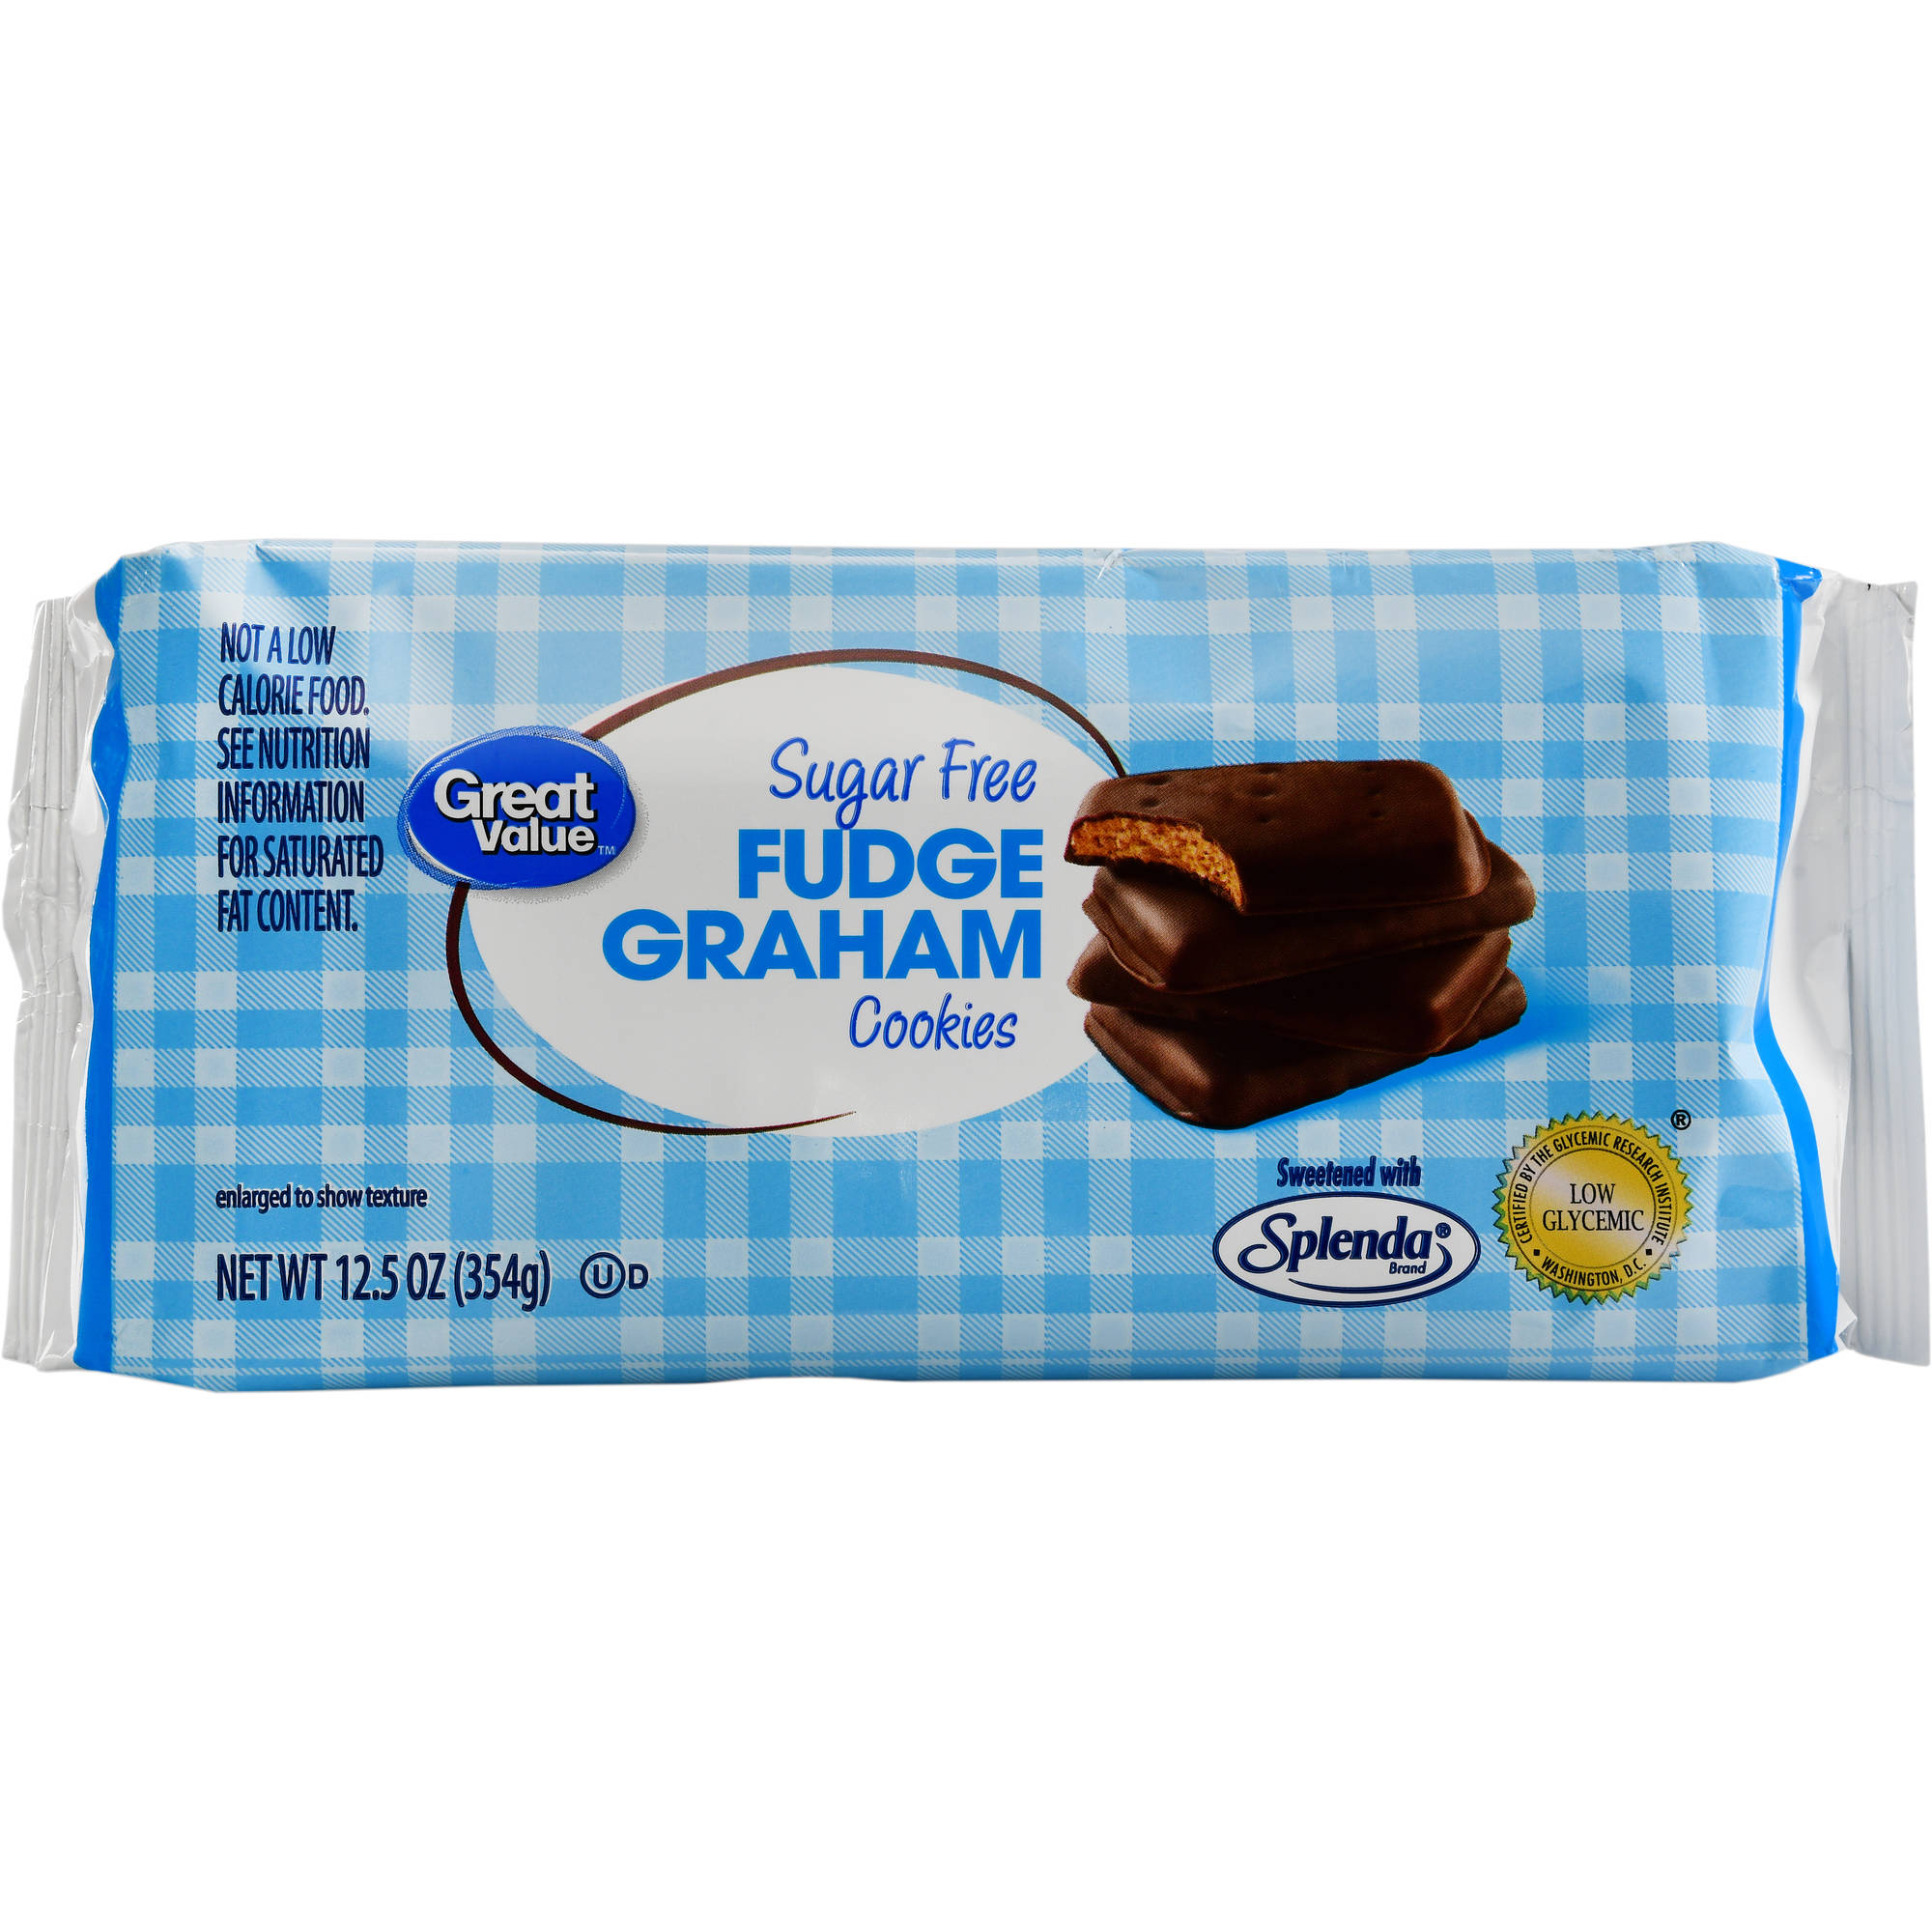 Great Value Sugar Free Fudge Graham Cookies, 12.5 oz